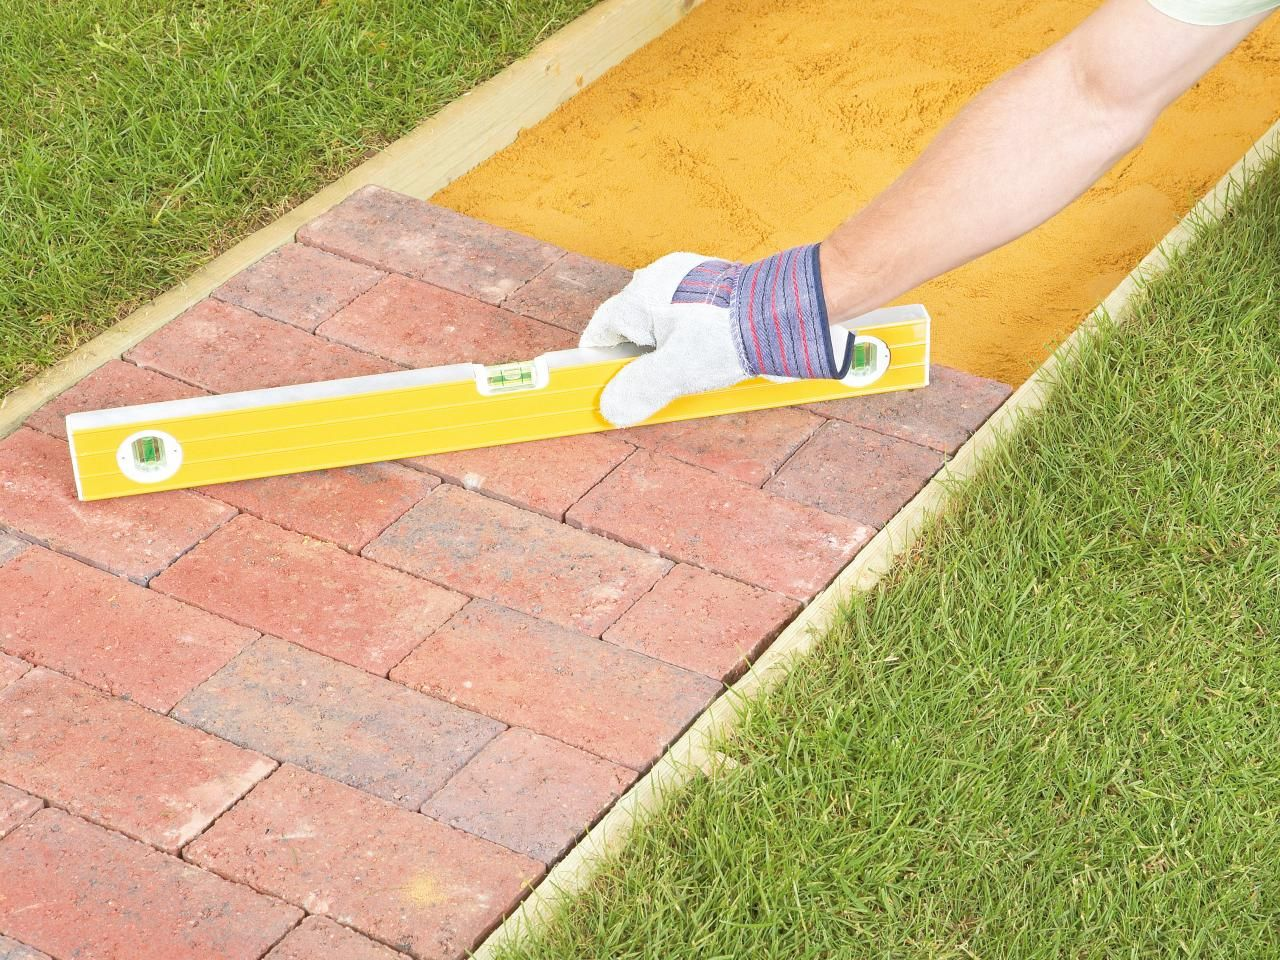 How to Lay a Brick Pathway | Bricks, Yards and Garden